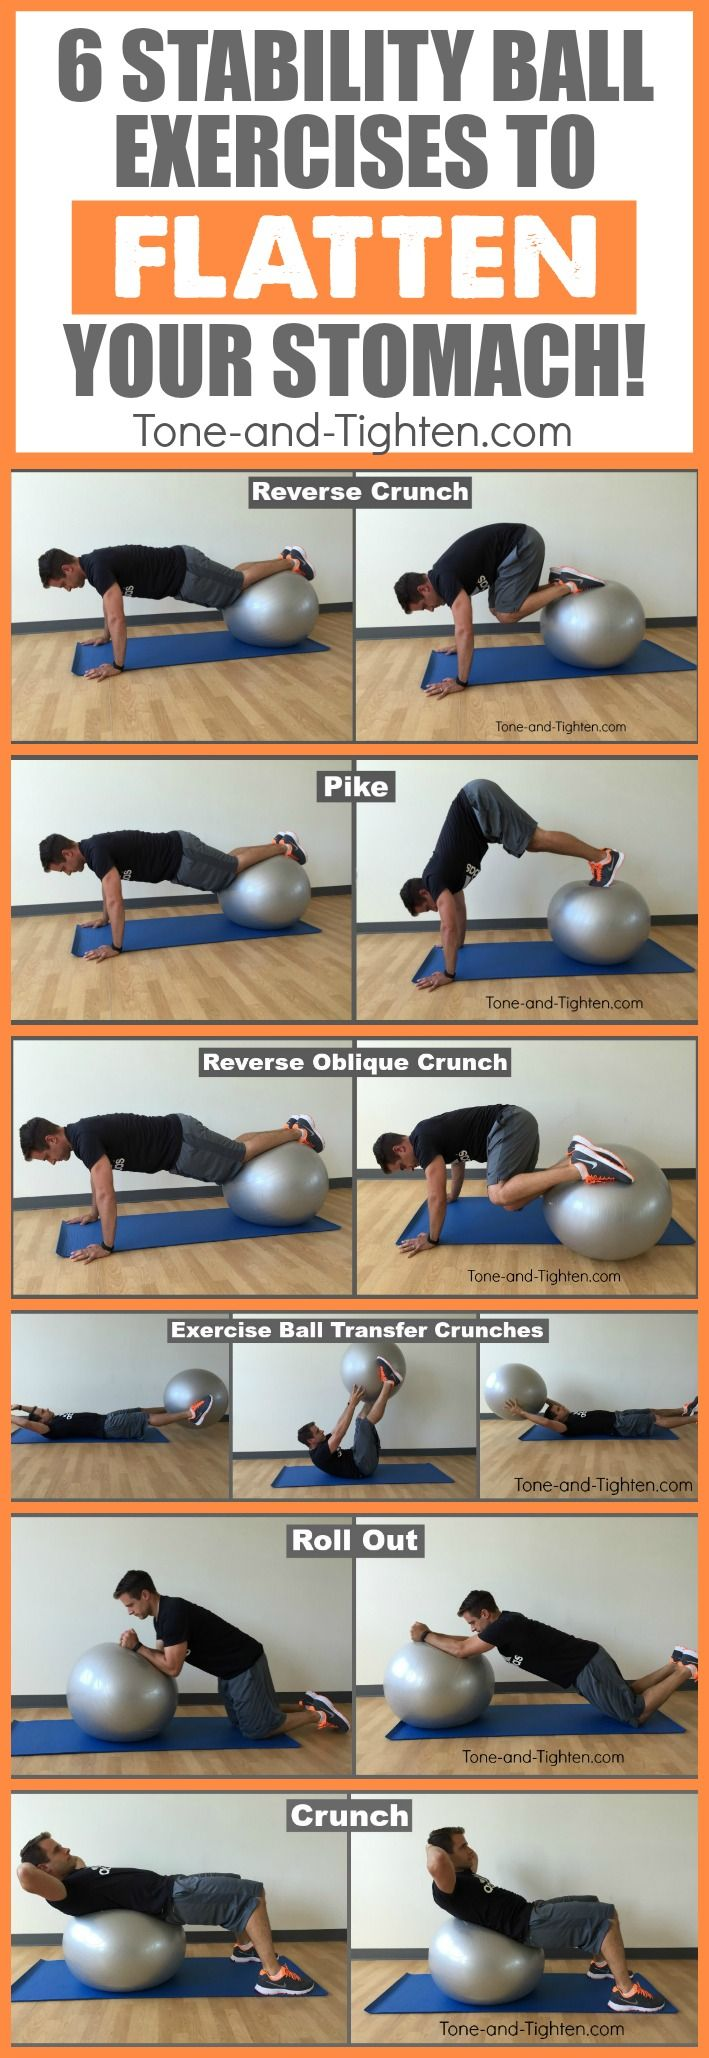 best exercise ball ab exercises stomach tone tighten pinterest